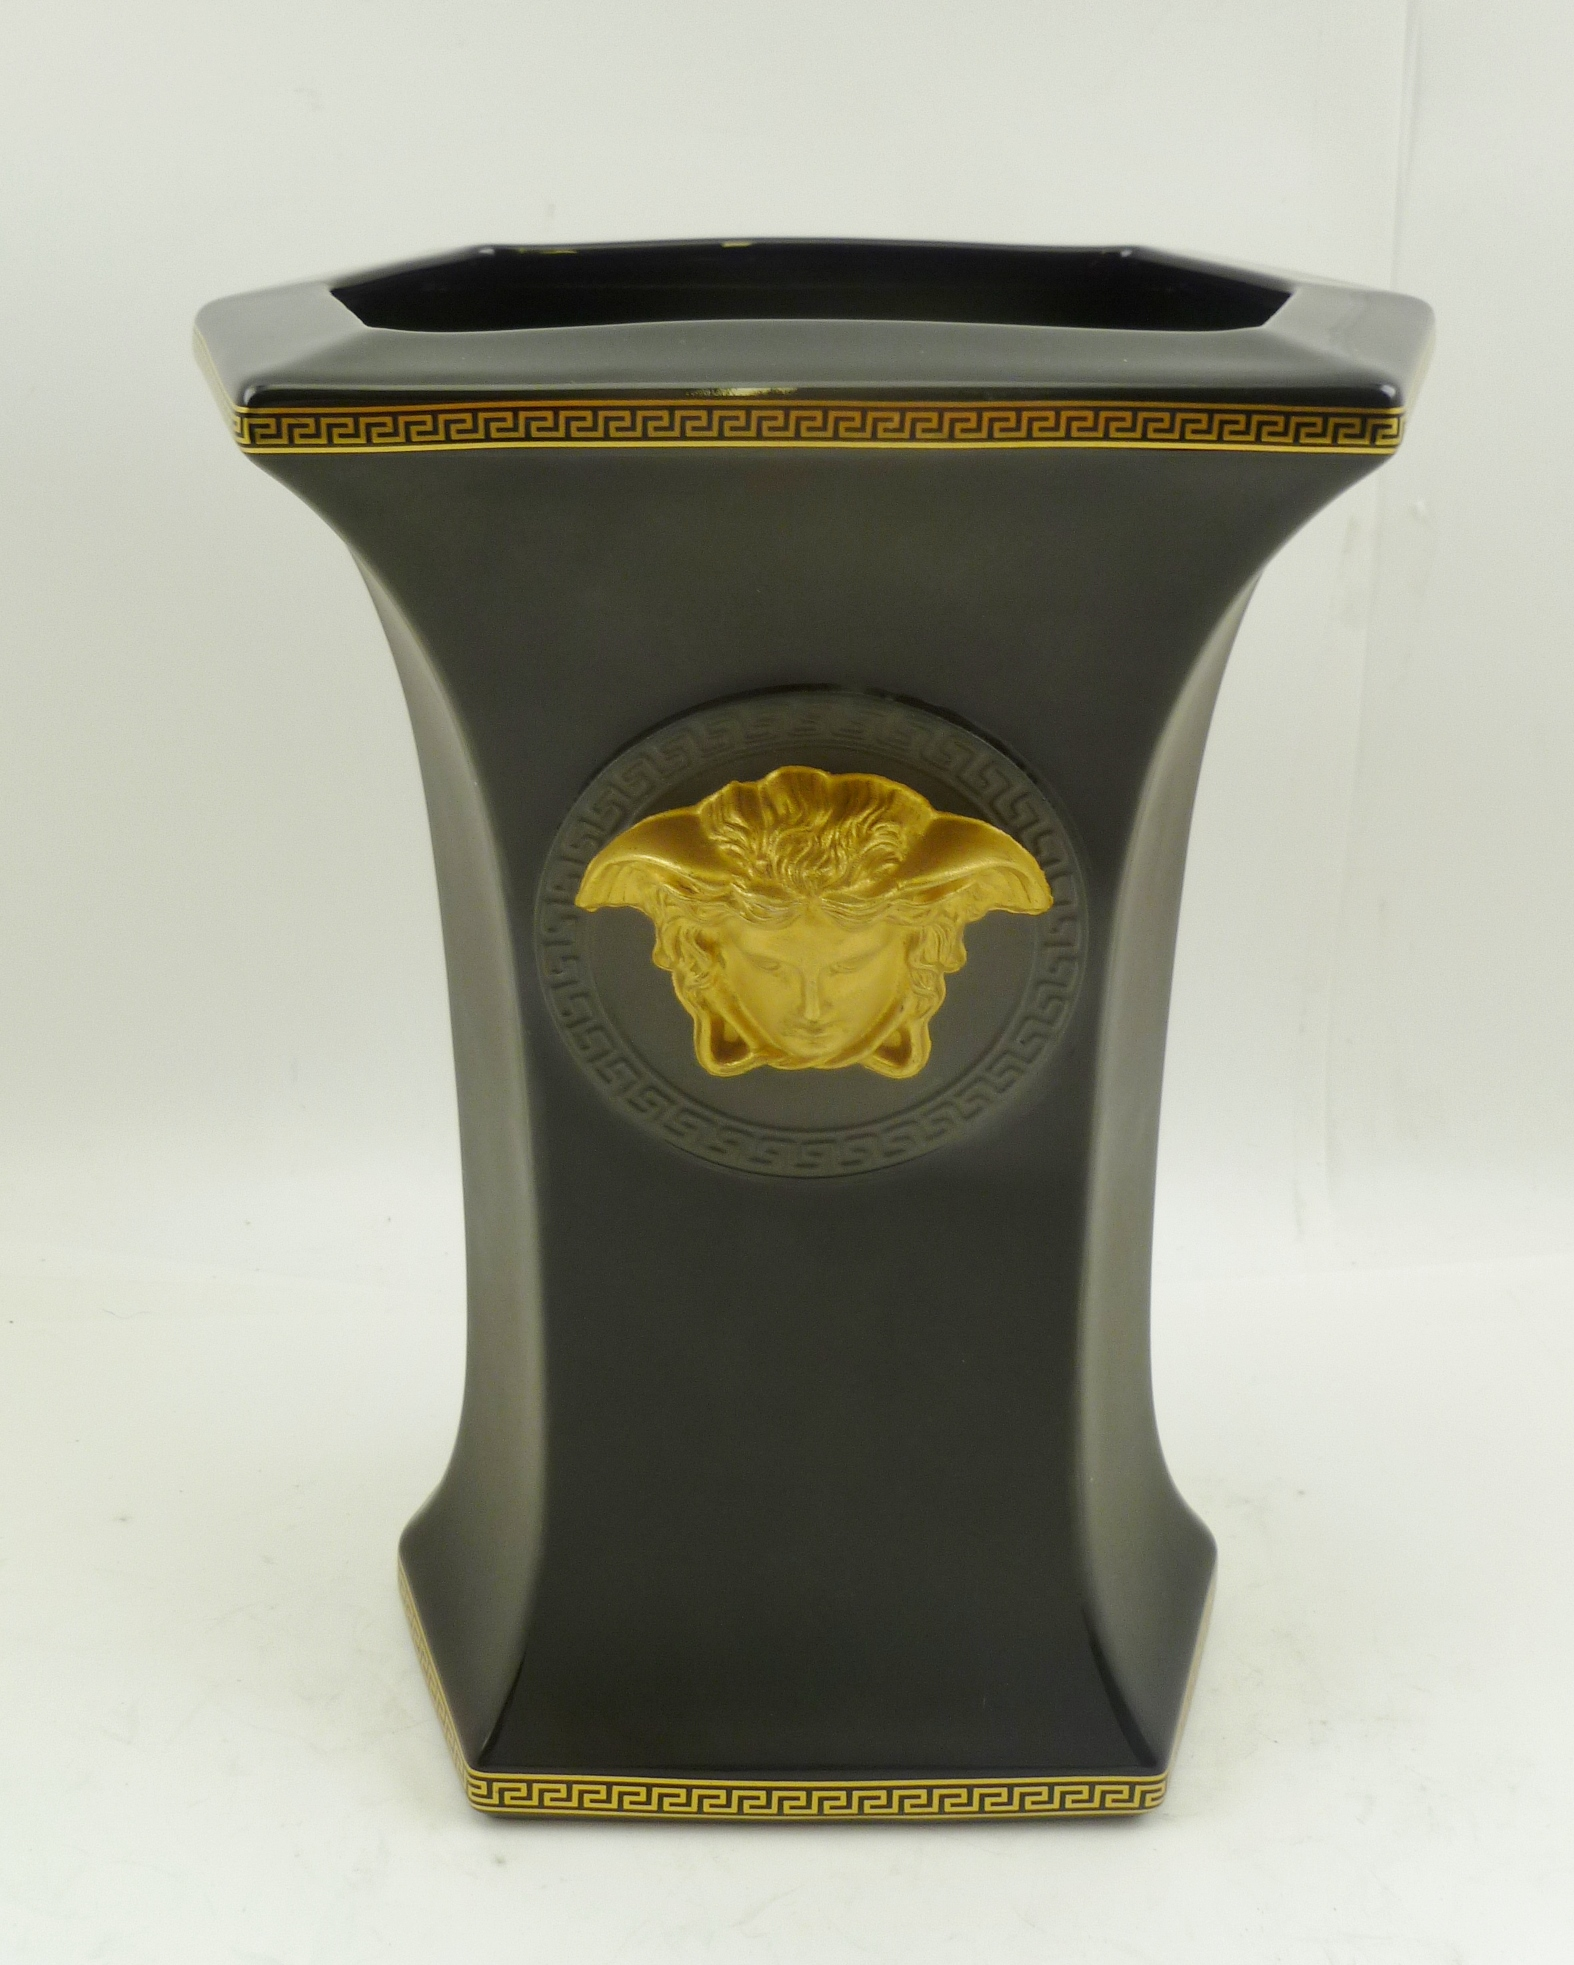 A ROSENTHAL VERSACE CERAMIC VASE, of waisted hexagonal form, black ground, with Greek key borders, classical mask gilded to one side, matt pewter to the verso, factory stamps to base, 23cm high